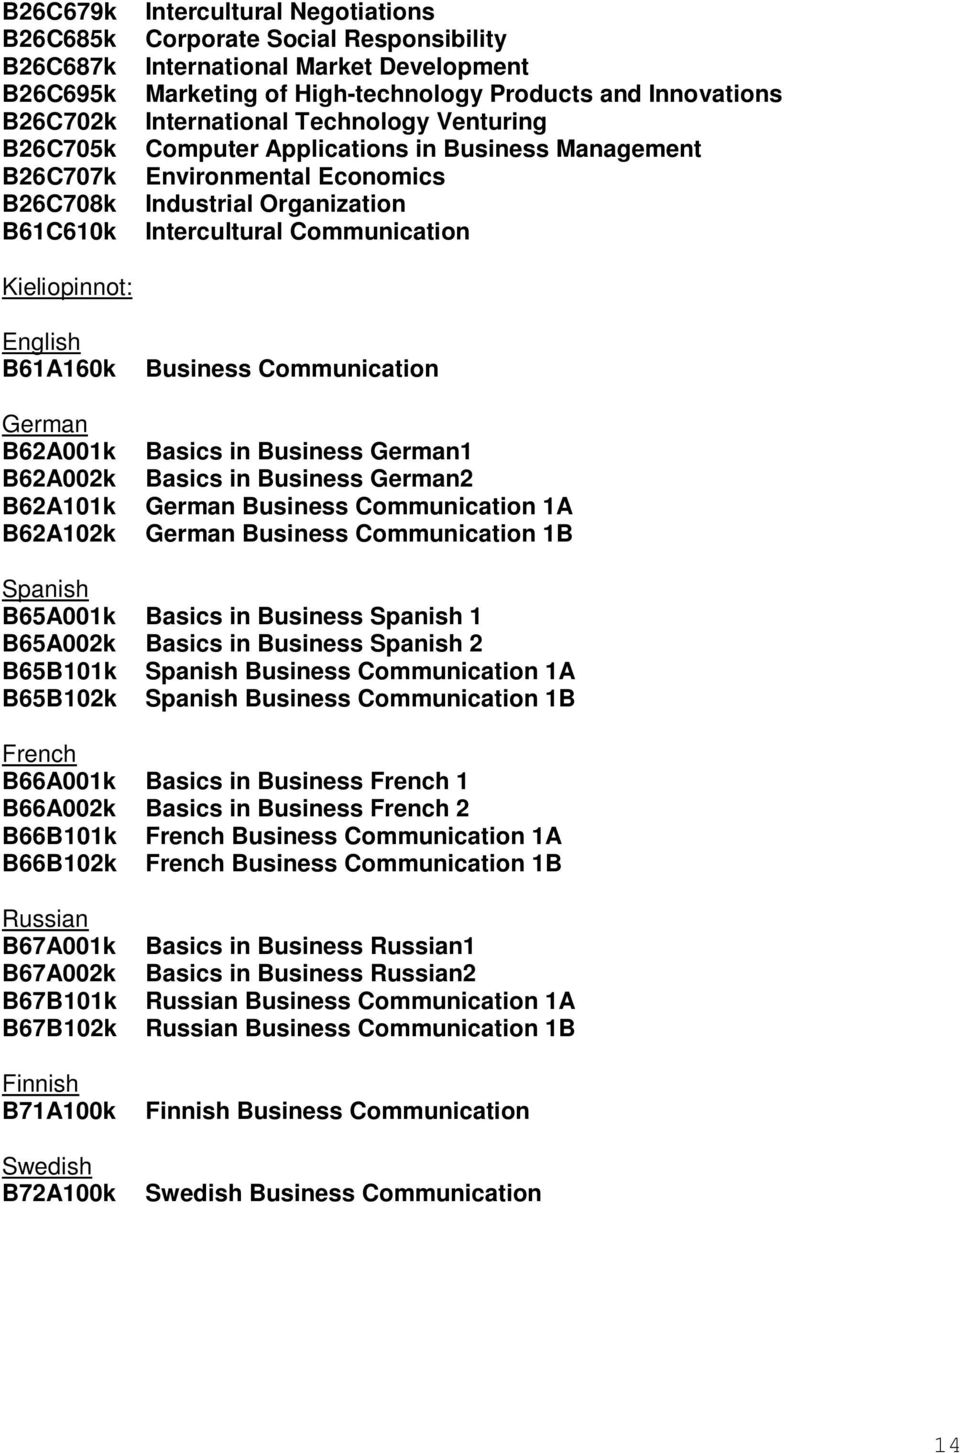 Kieliopinnot: English B61A160k Business Communication German B62A001k Basics in Business German1 B62A002k Basics in Business German2 B62A101k German Business Communication 1A B62A102k German Business